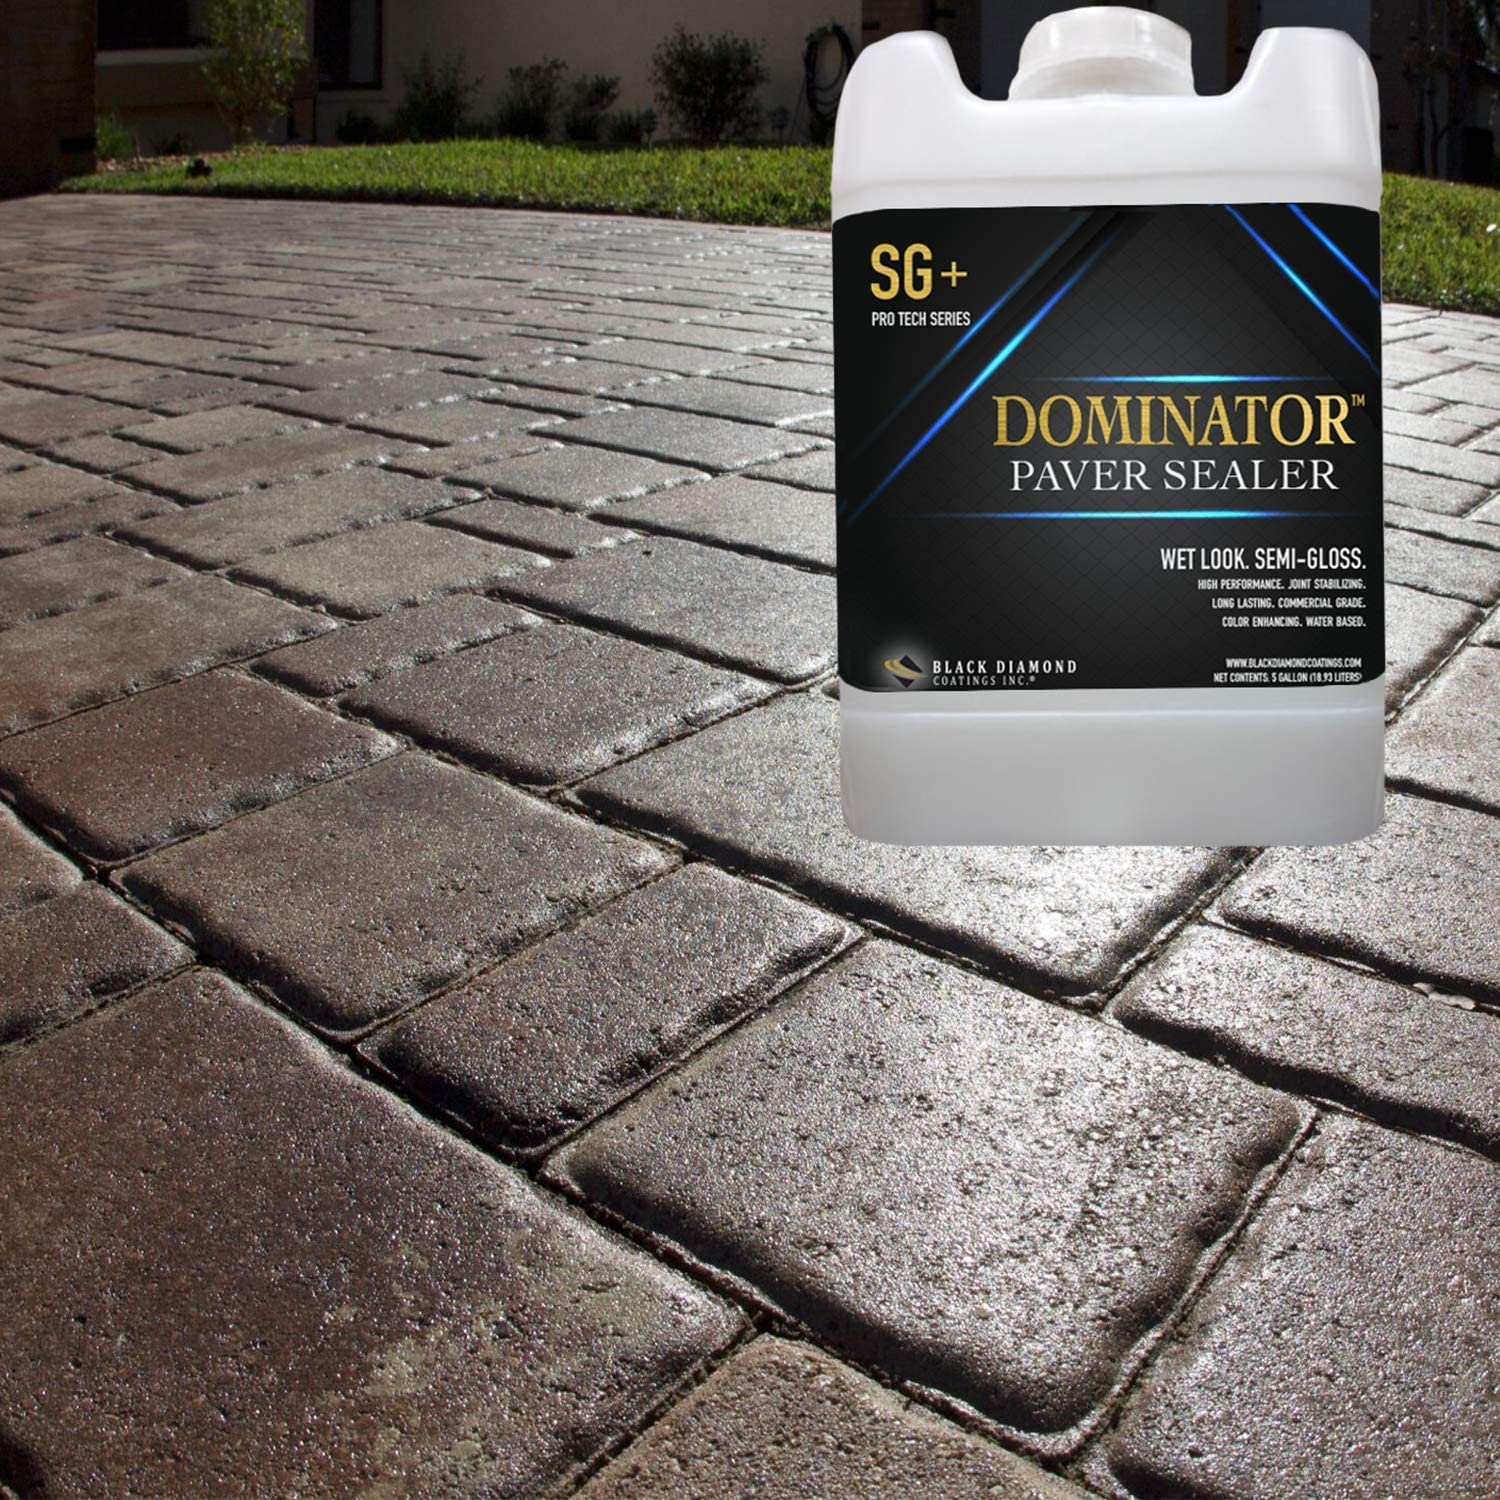 DOMINATOR SG+ High-gloss Paver Sealer